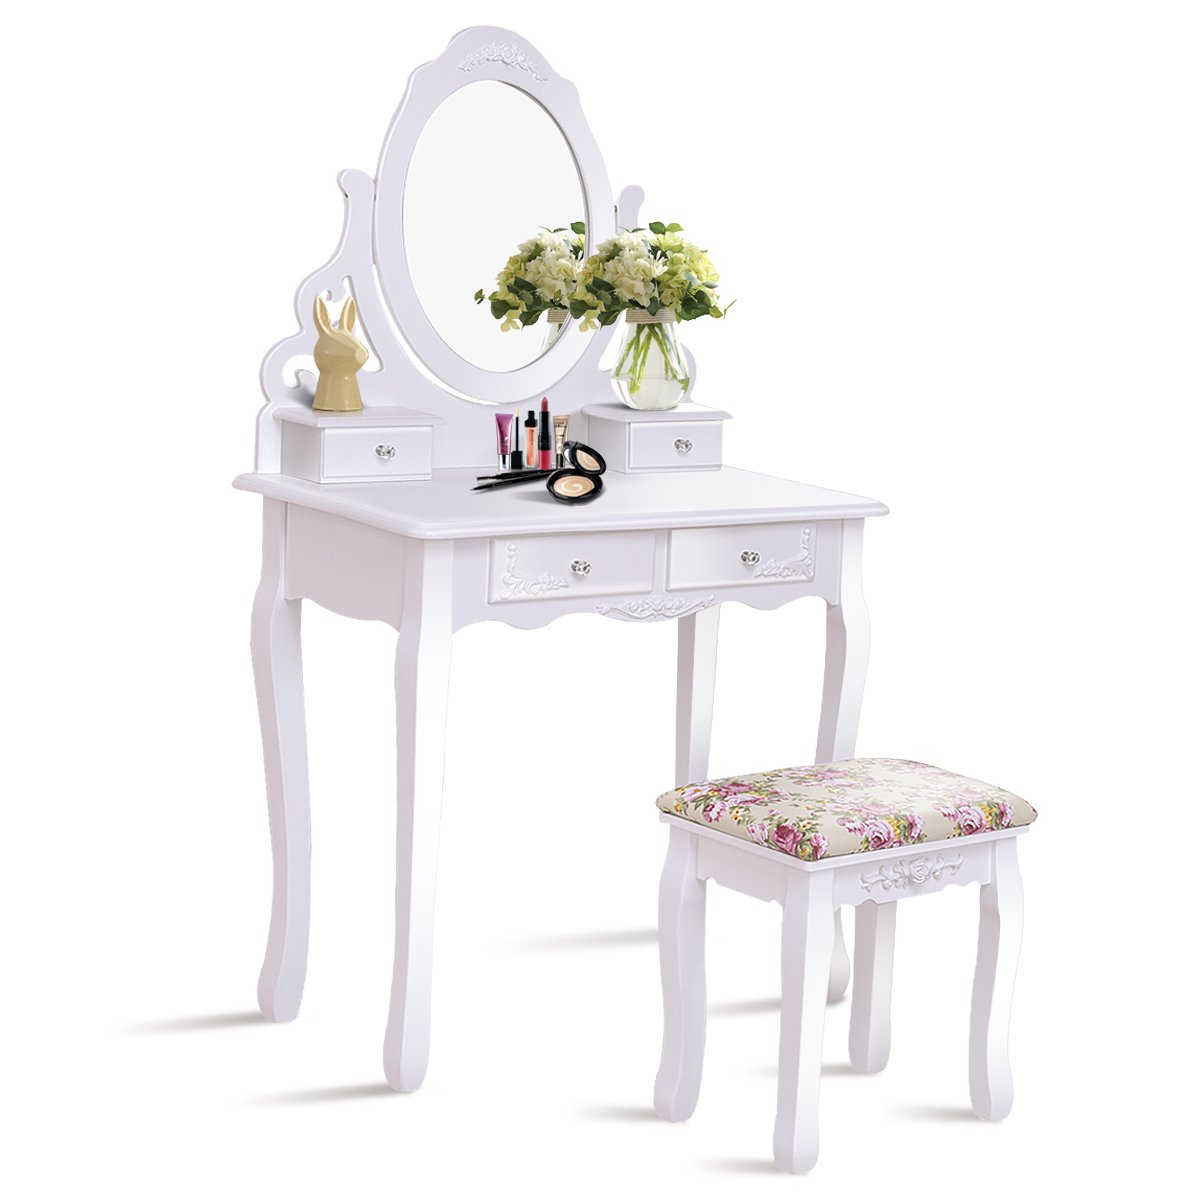 Giantex White Bathroom Vanity Dressing Table Set Mirror with Stool (Round Mirror 4 Drawers)